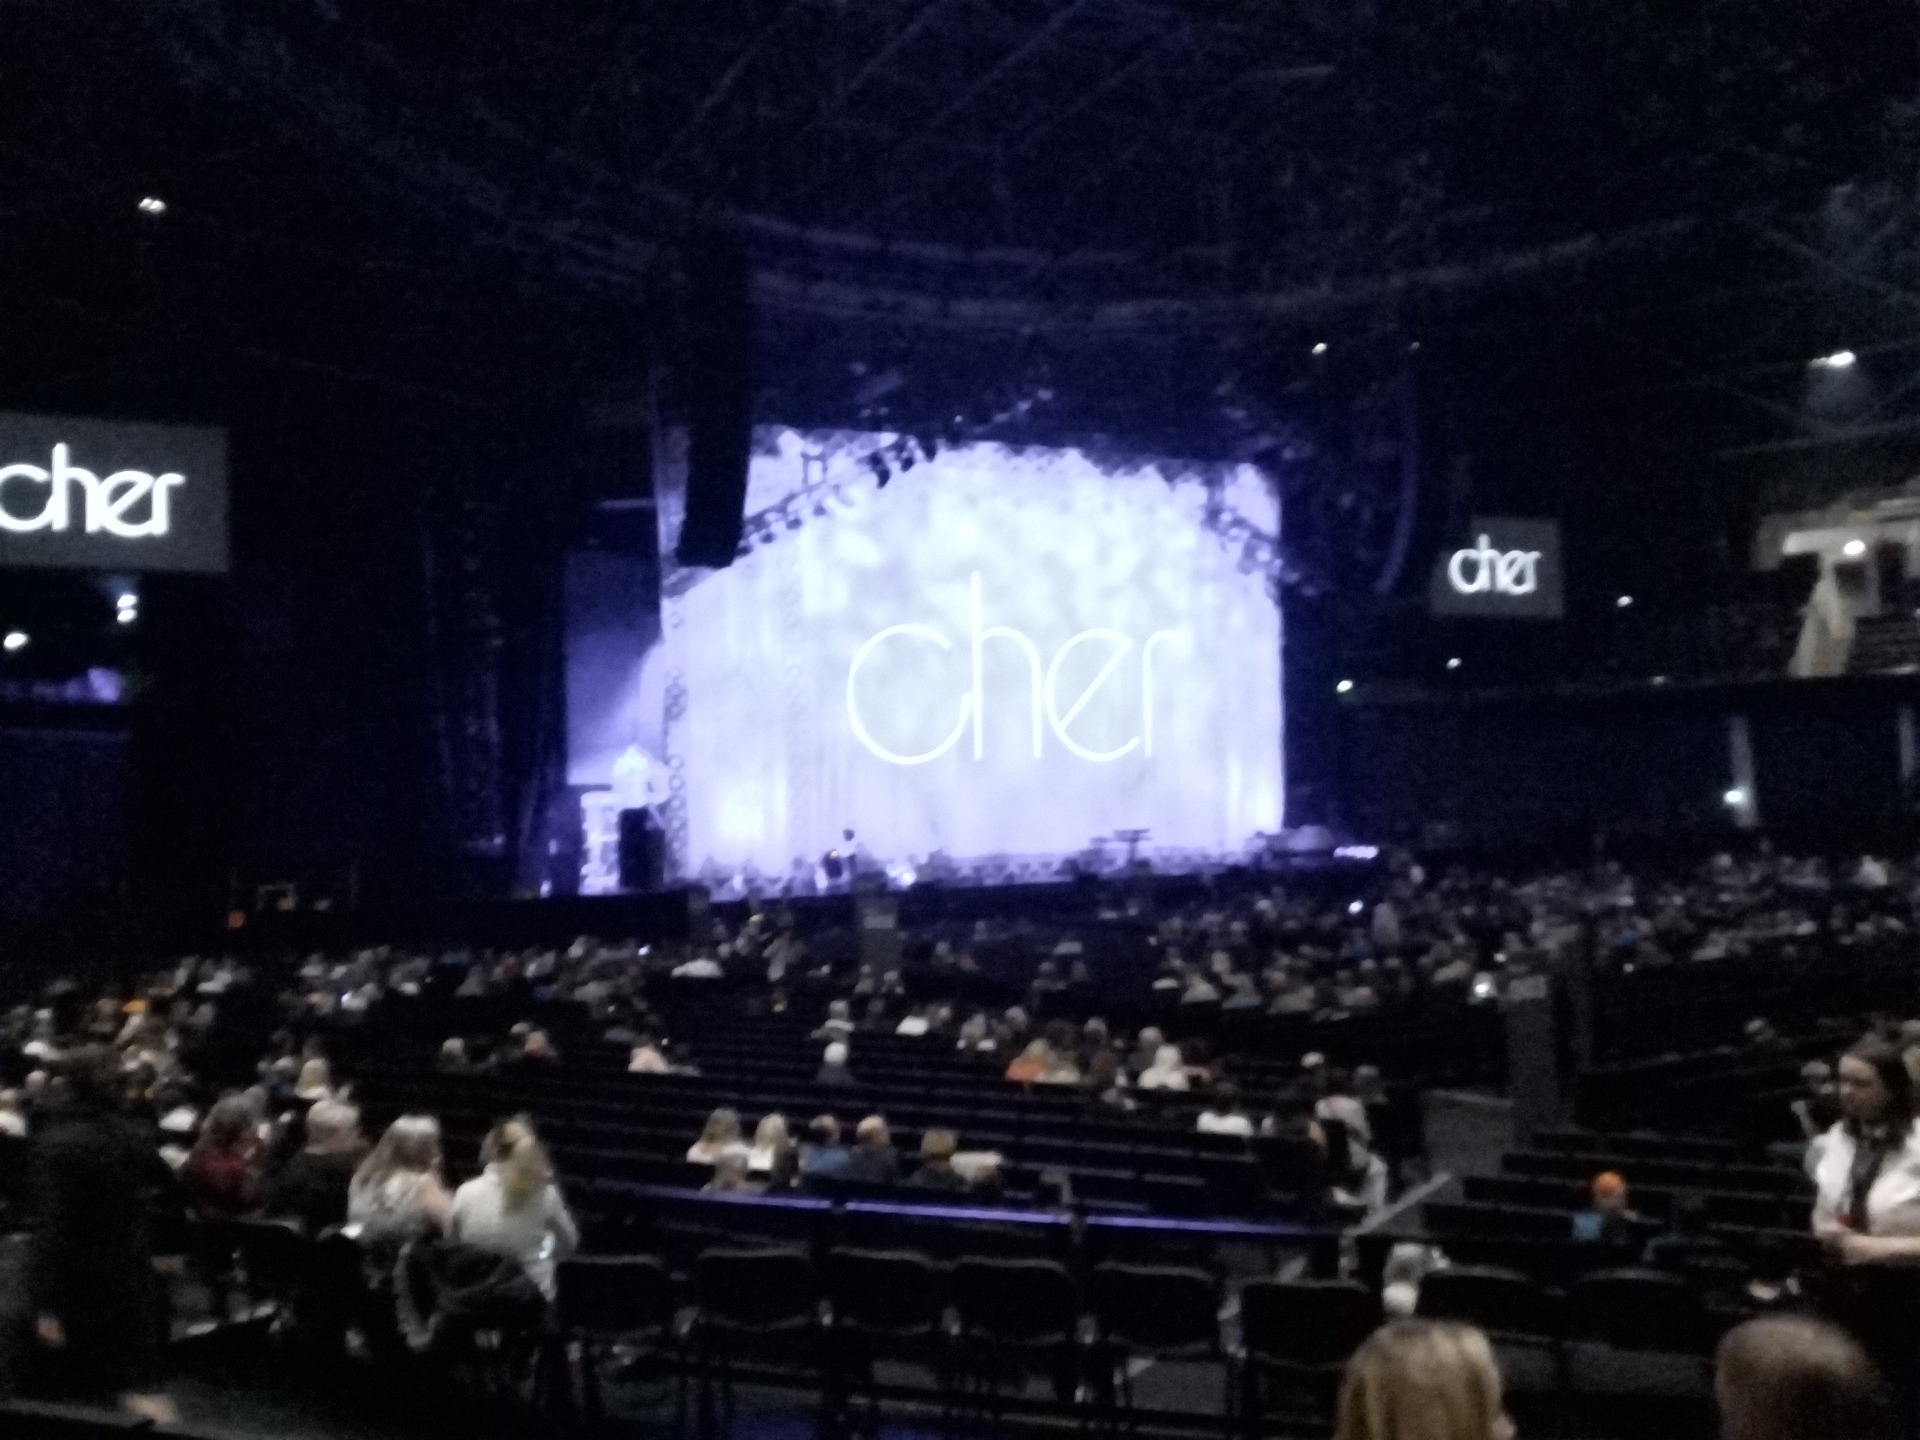 The SSE Hydro Section 052 Row H Seat 65